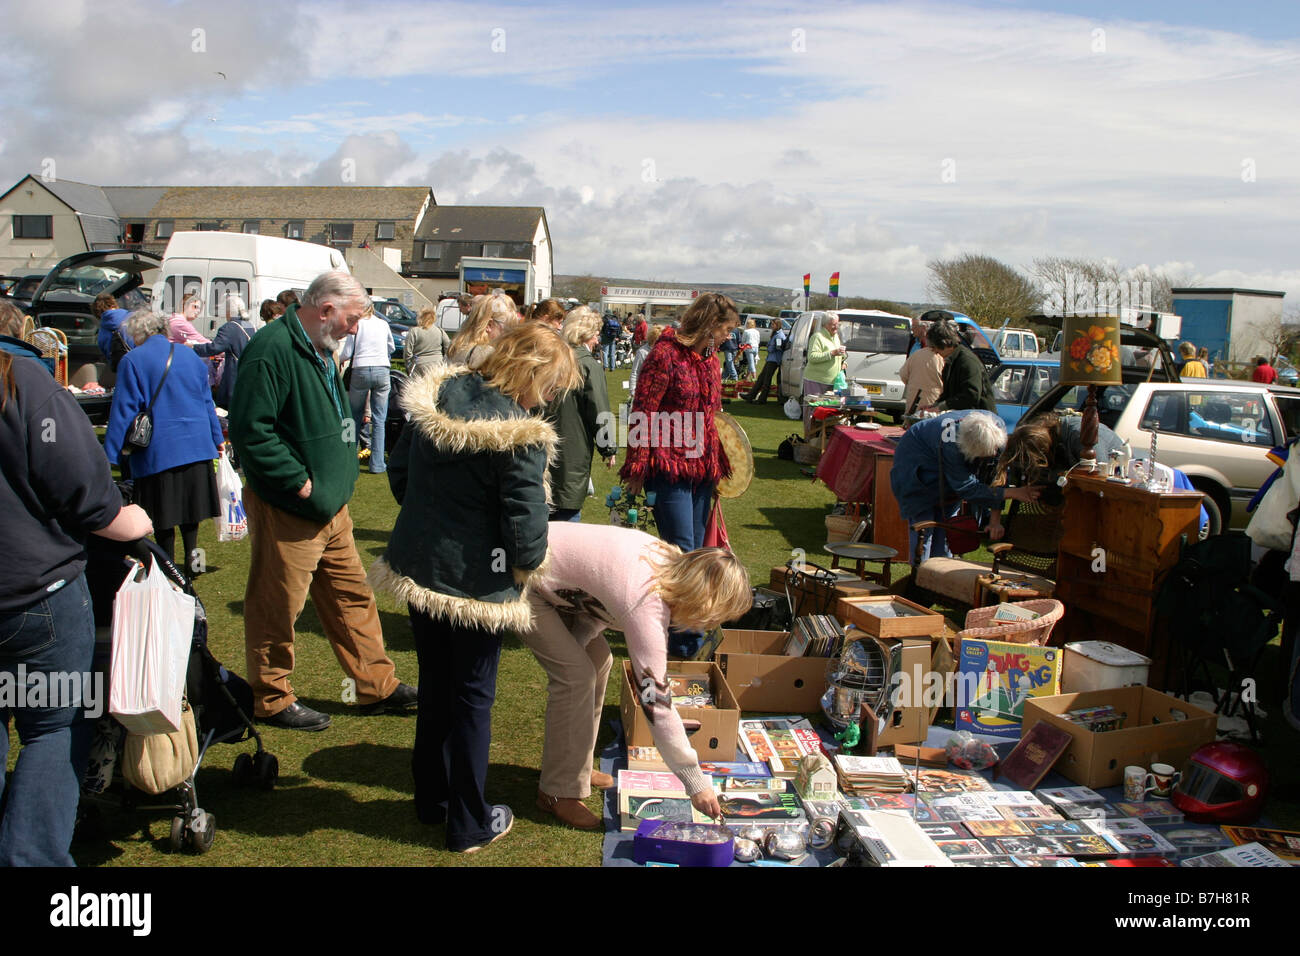 People peruse at a car boot sale - Stock Image